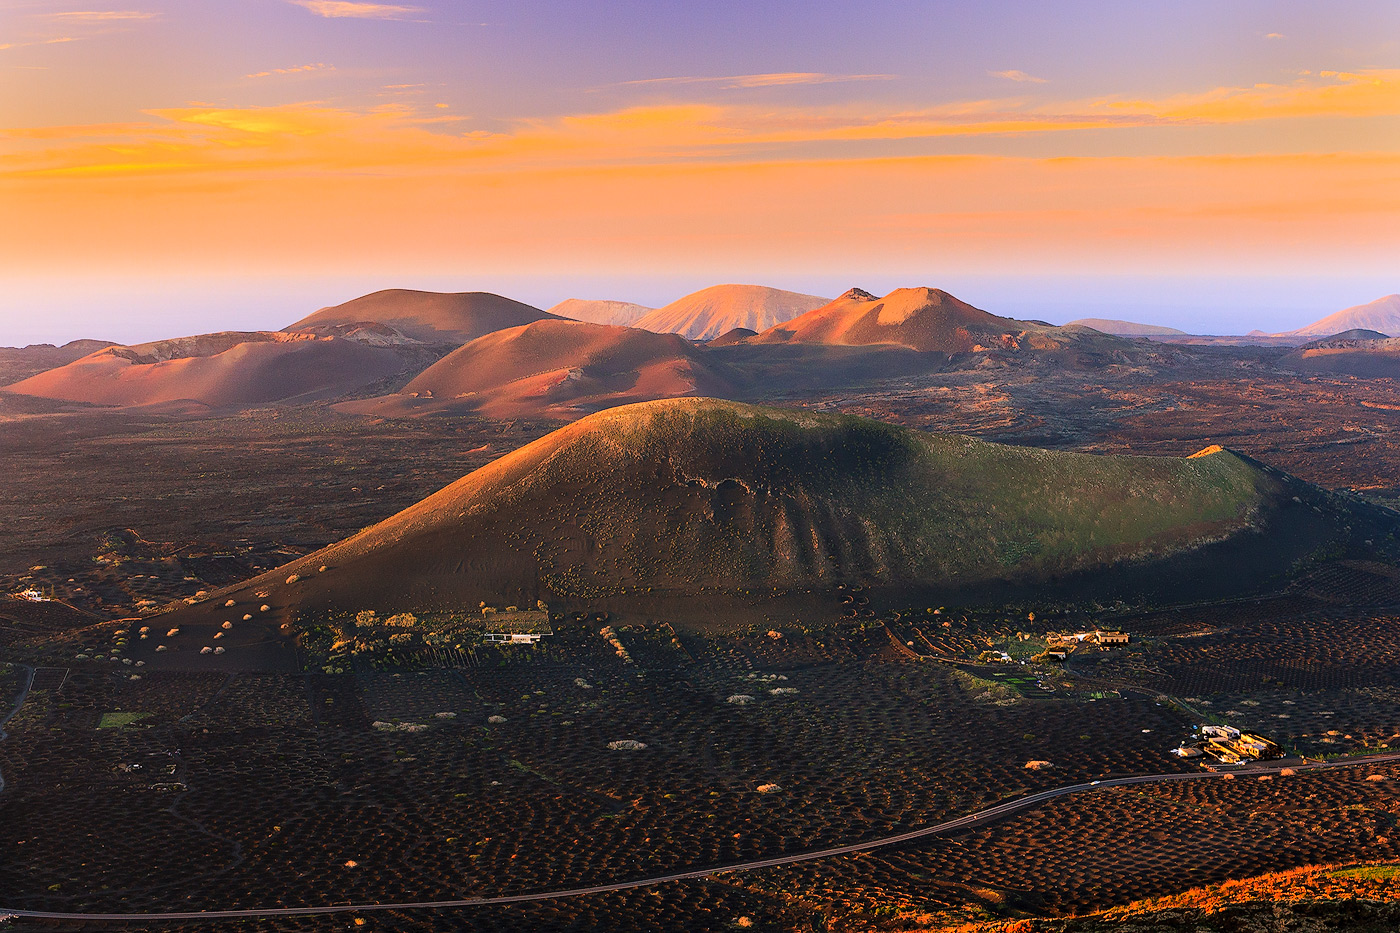 Sunset view over La Geria in Lanzarote - Canary Islands